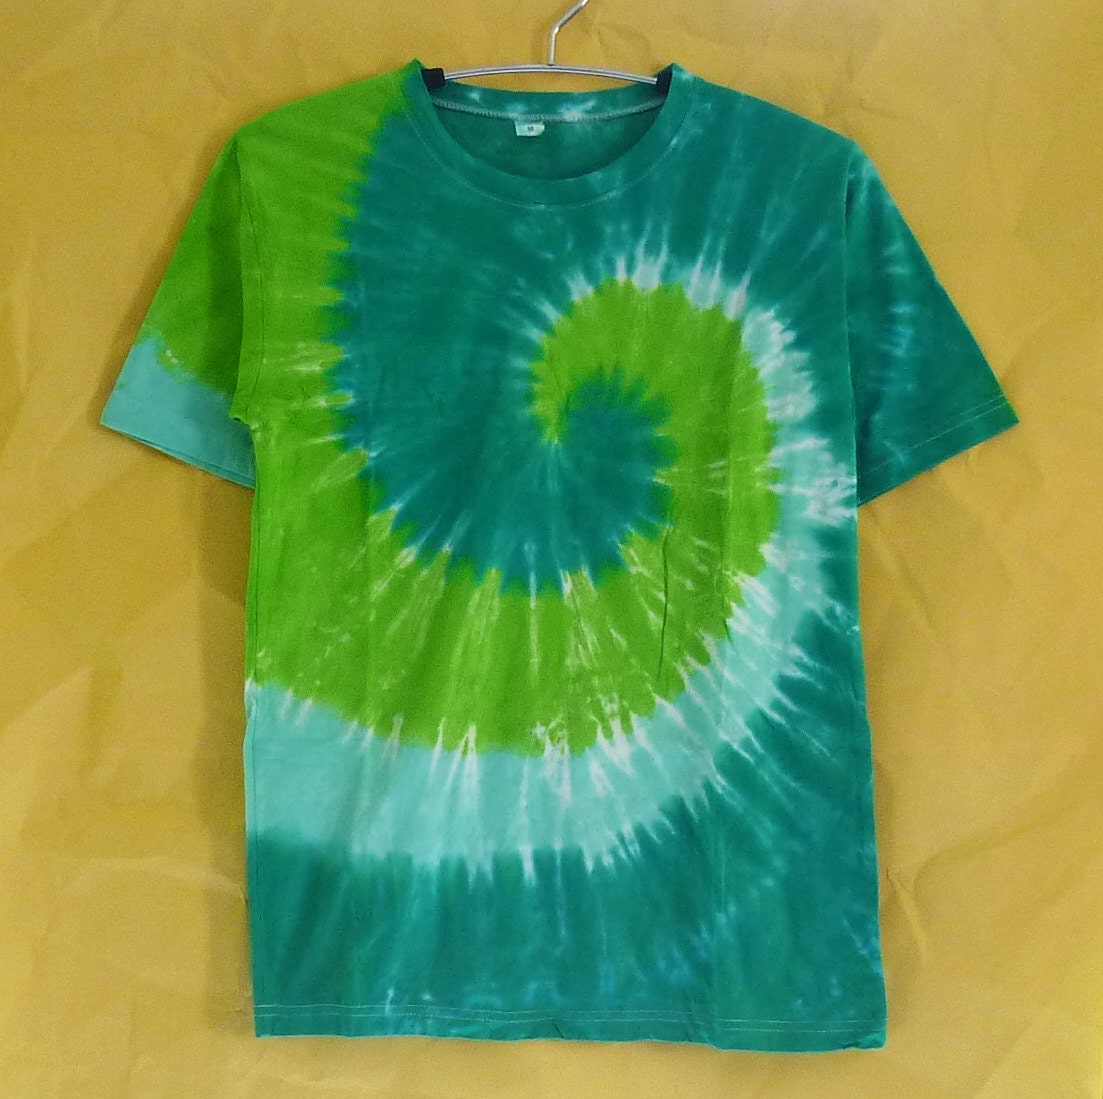 Tie dyed shirt green color short sleeve crew neck tee for Nike tie dye shirt and shorts